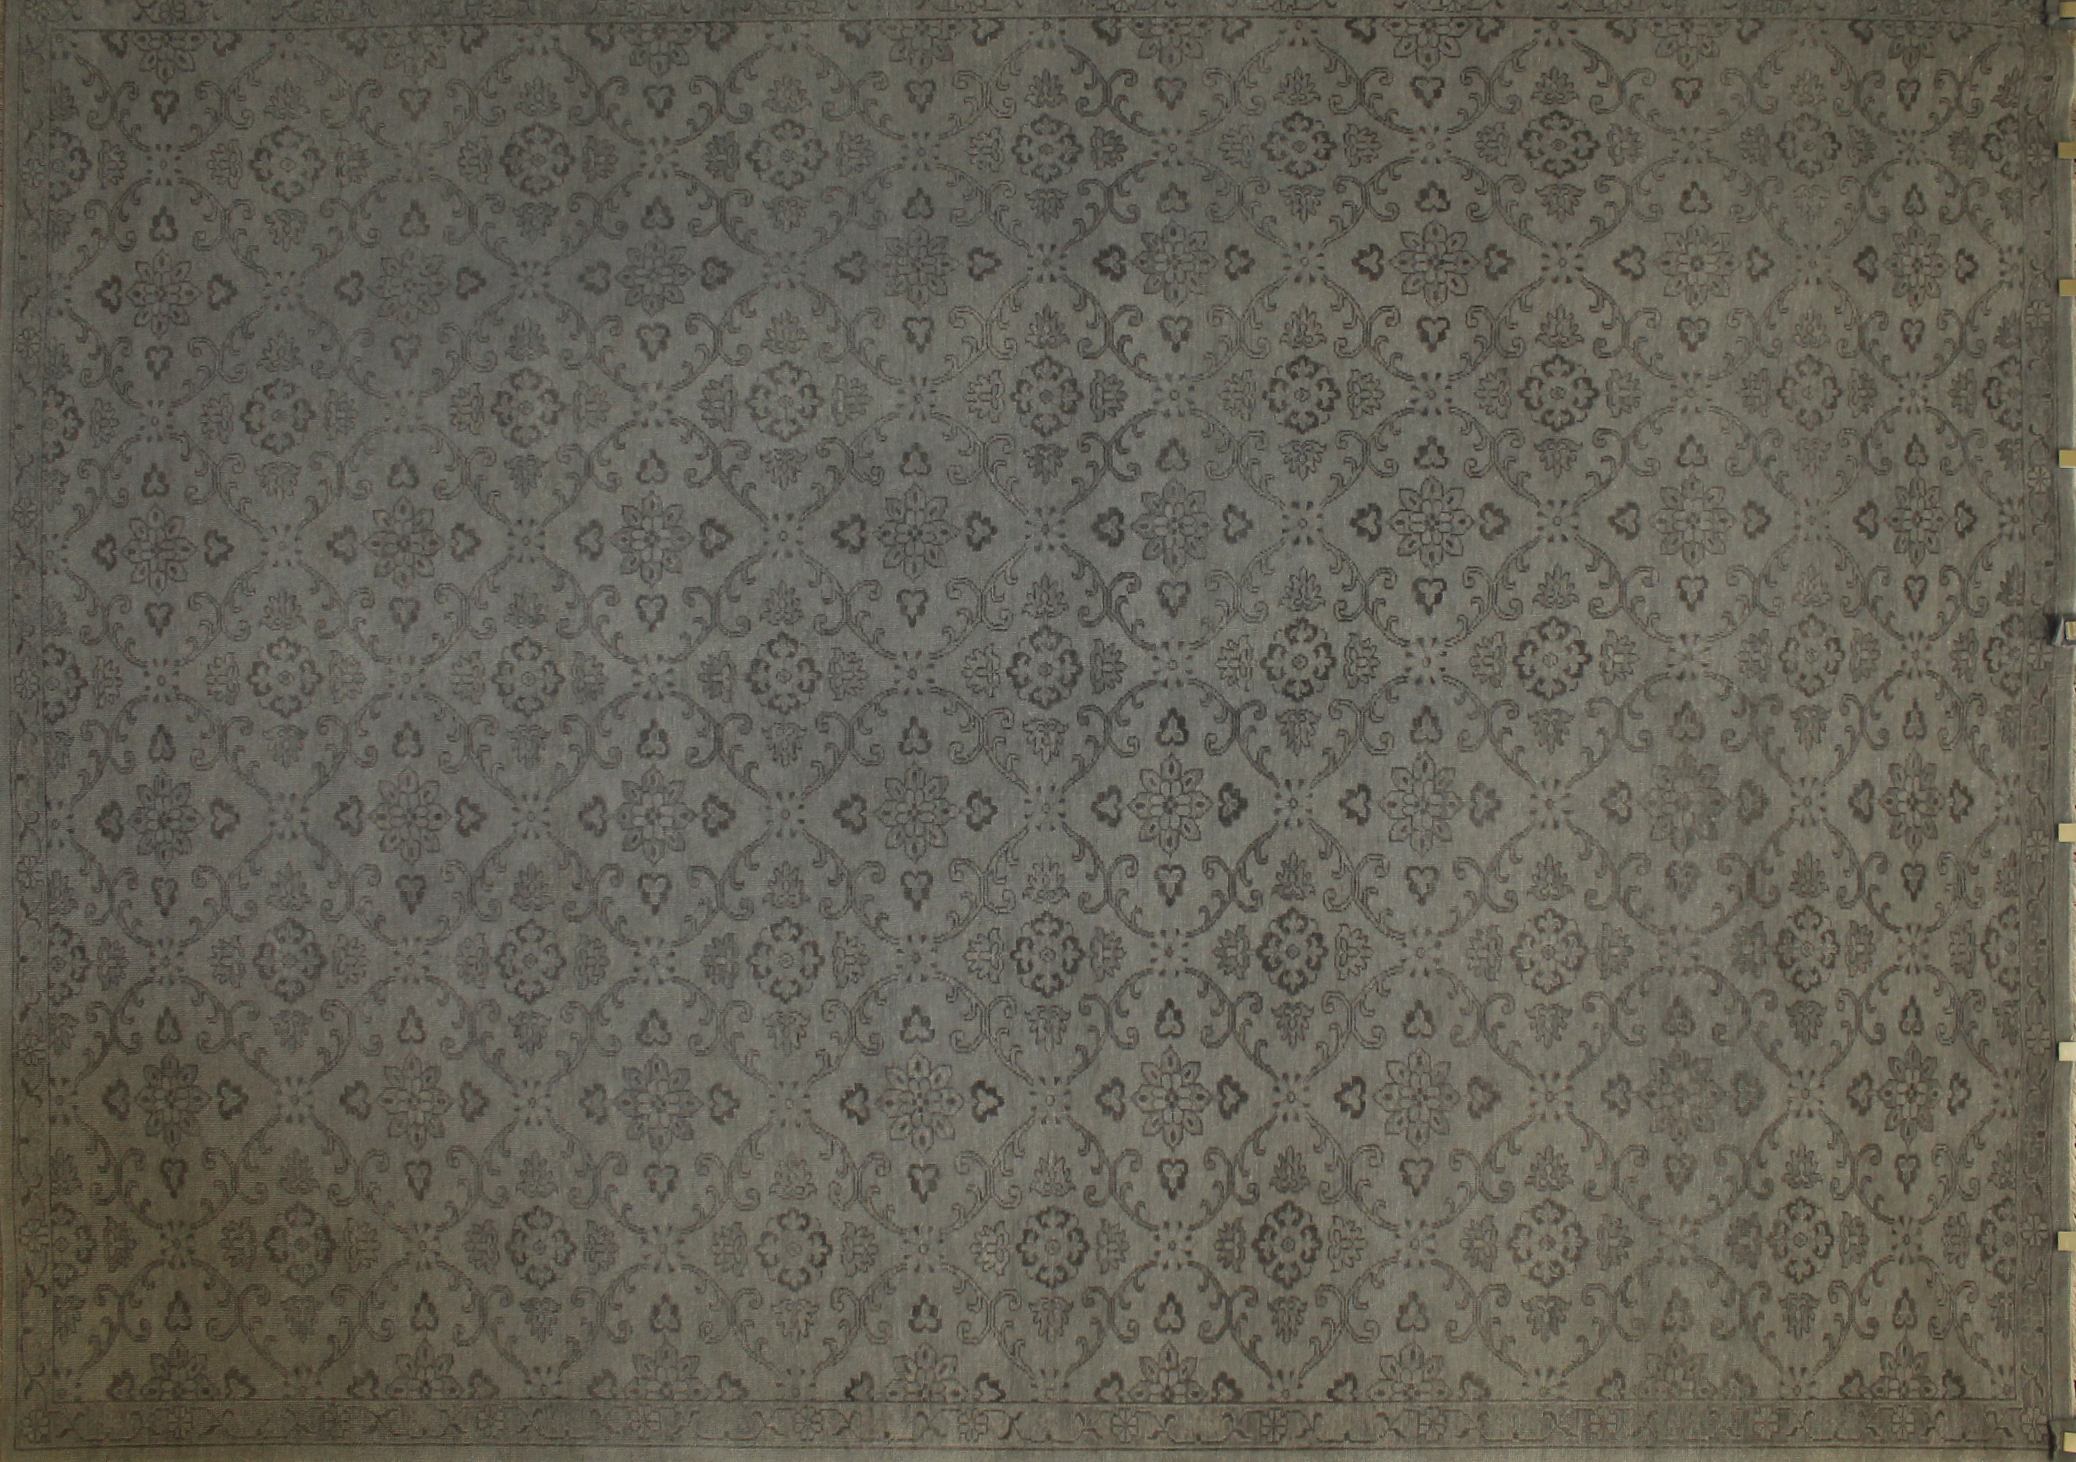 9x12 Oushak Hand Knotted Wool Area Rug - MR19106